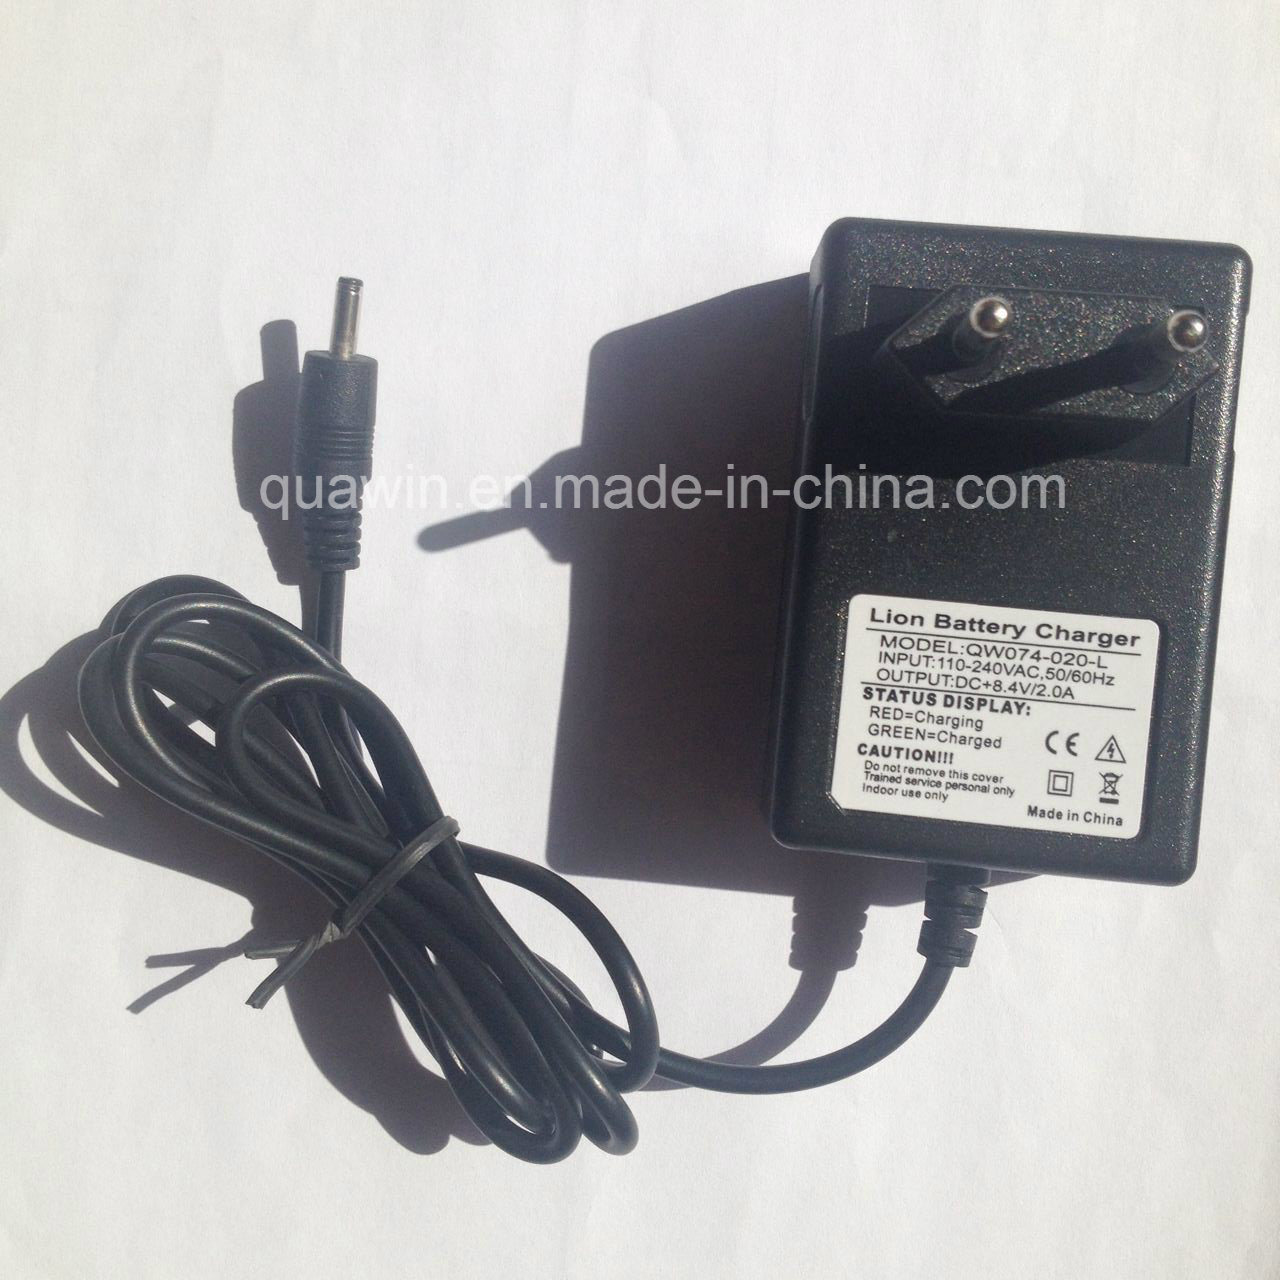 8.4V 2A Lithium Battery Charger with DC Male Connector